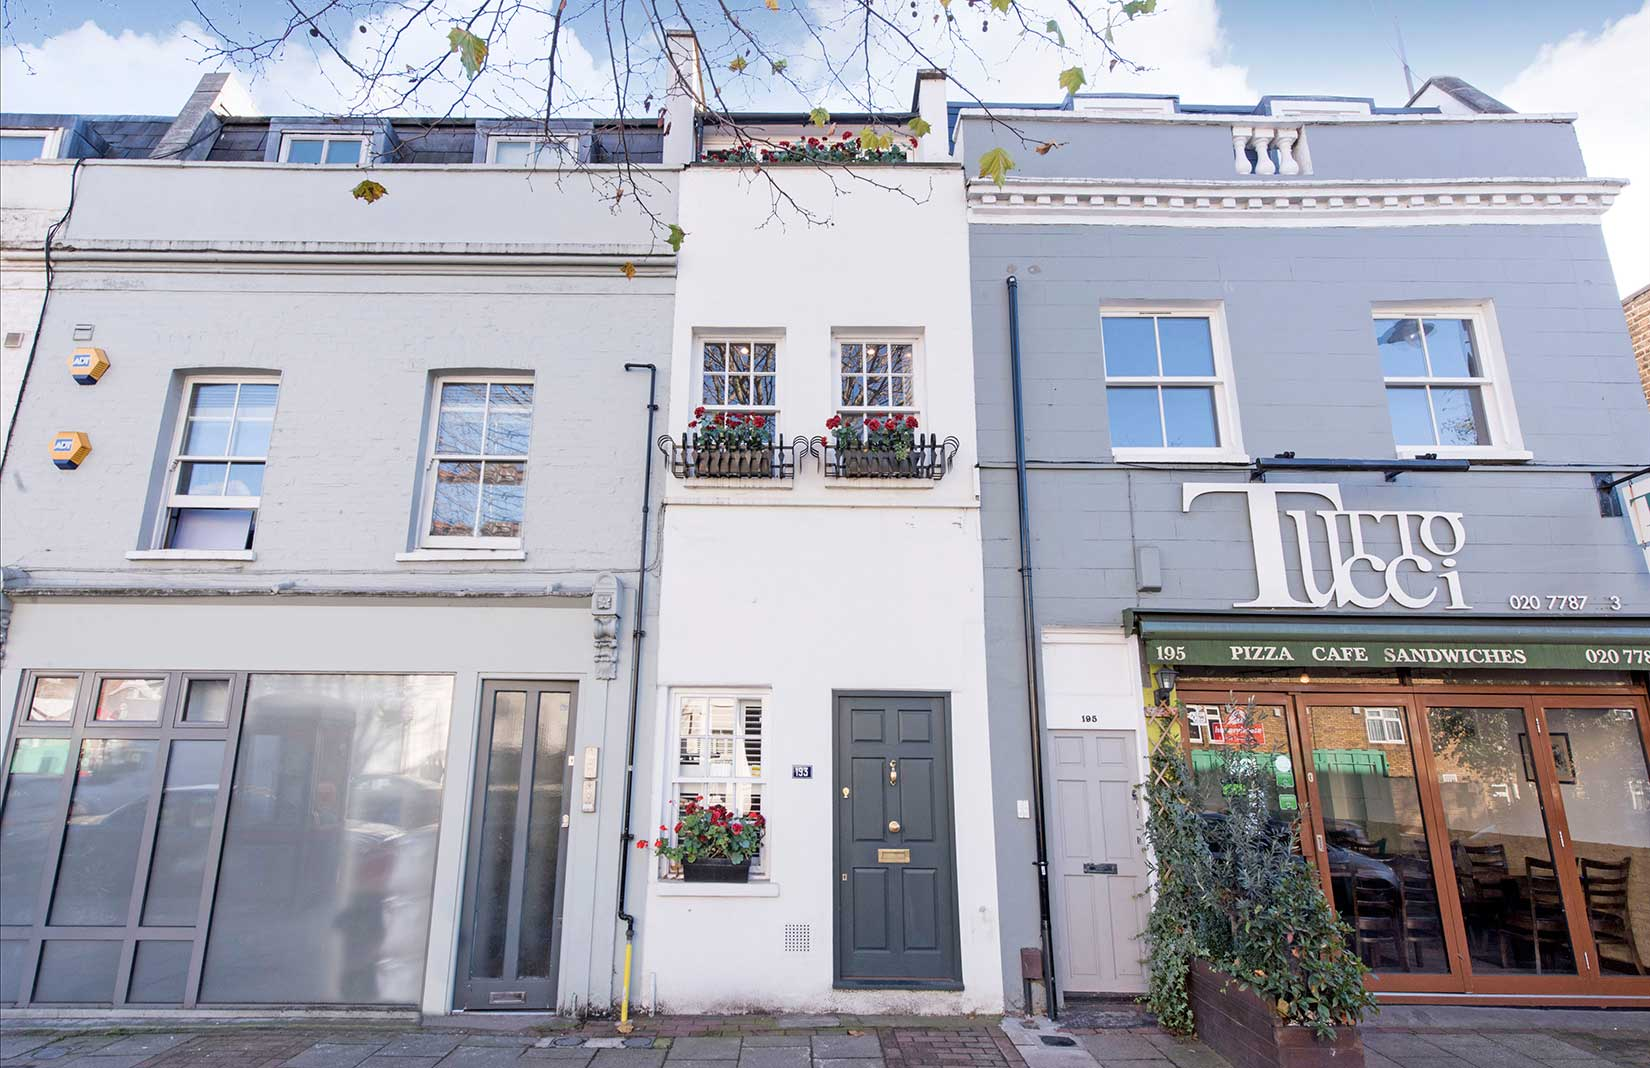 Shot of very narrow home with white facade and windows with planters wedged between two wider buildings.